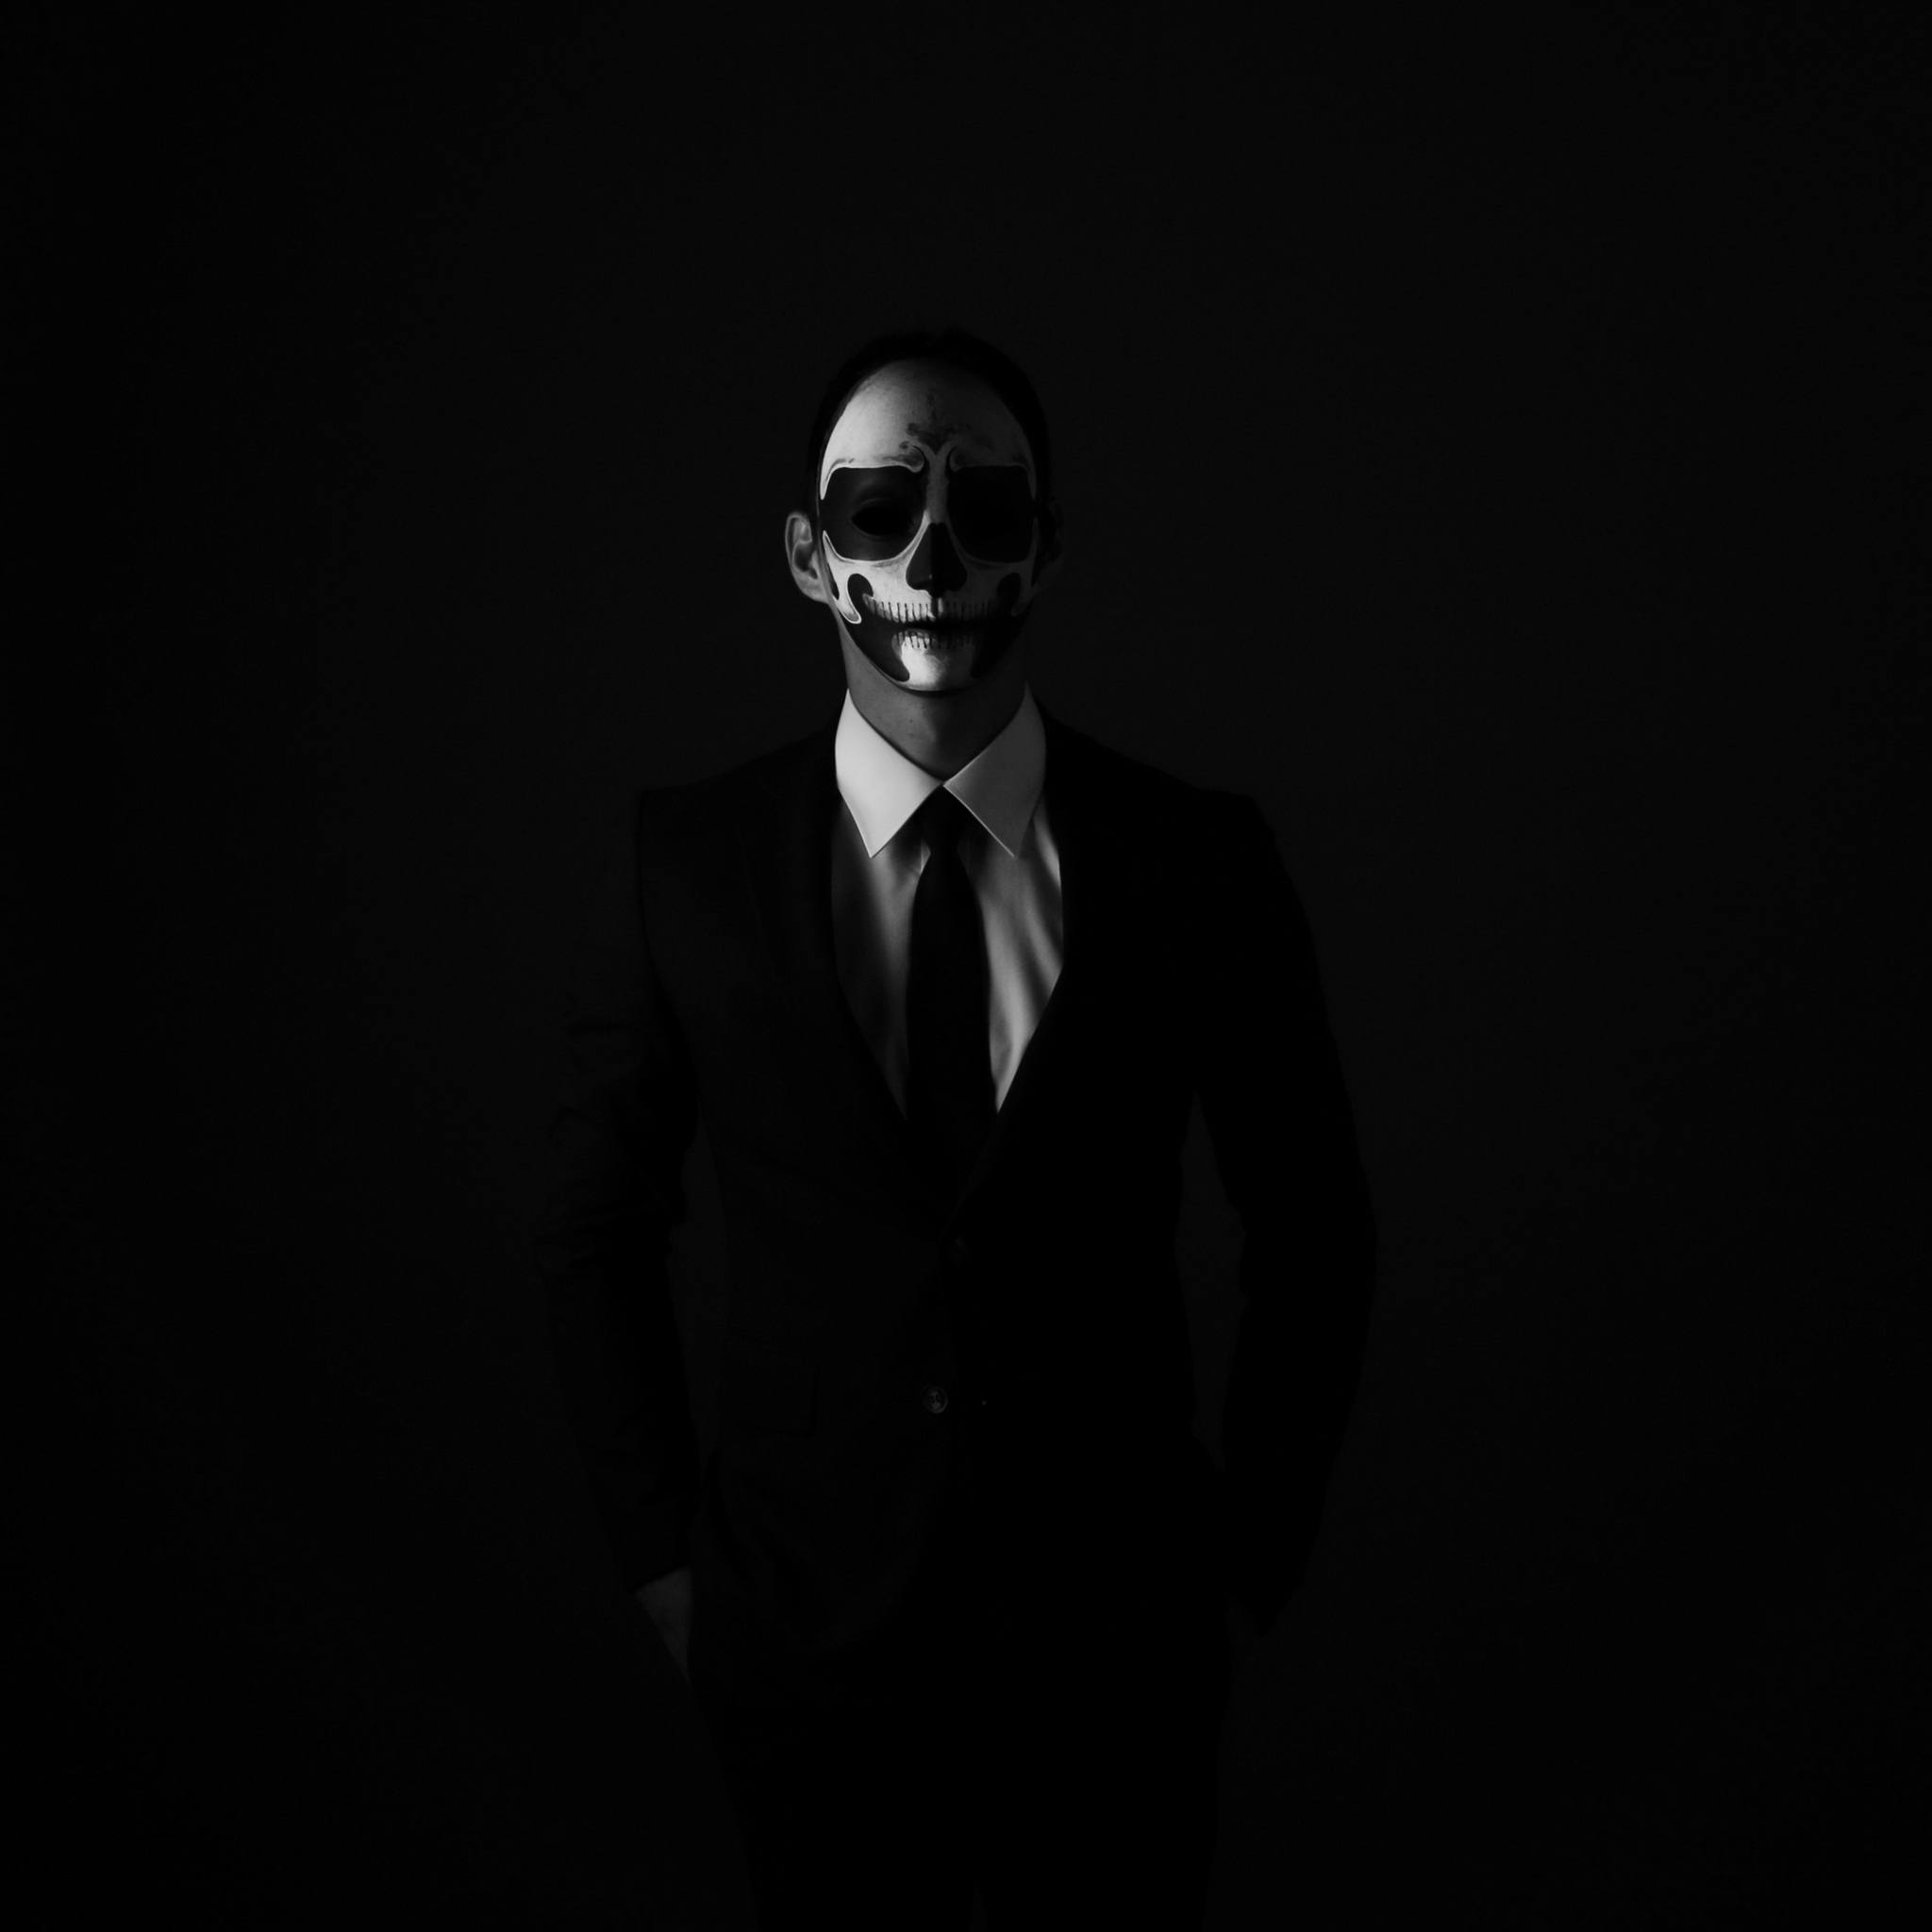 mask anonymous bw tie suit jacket shirt dark 4k